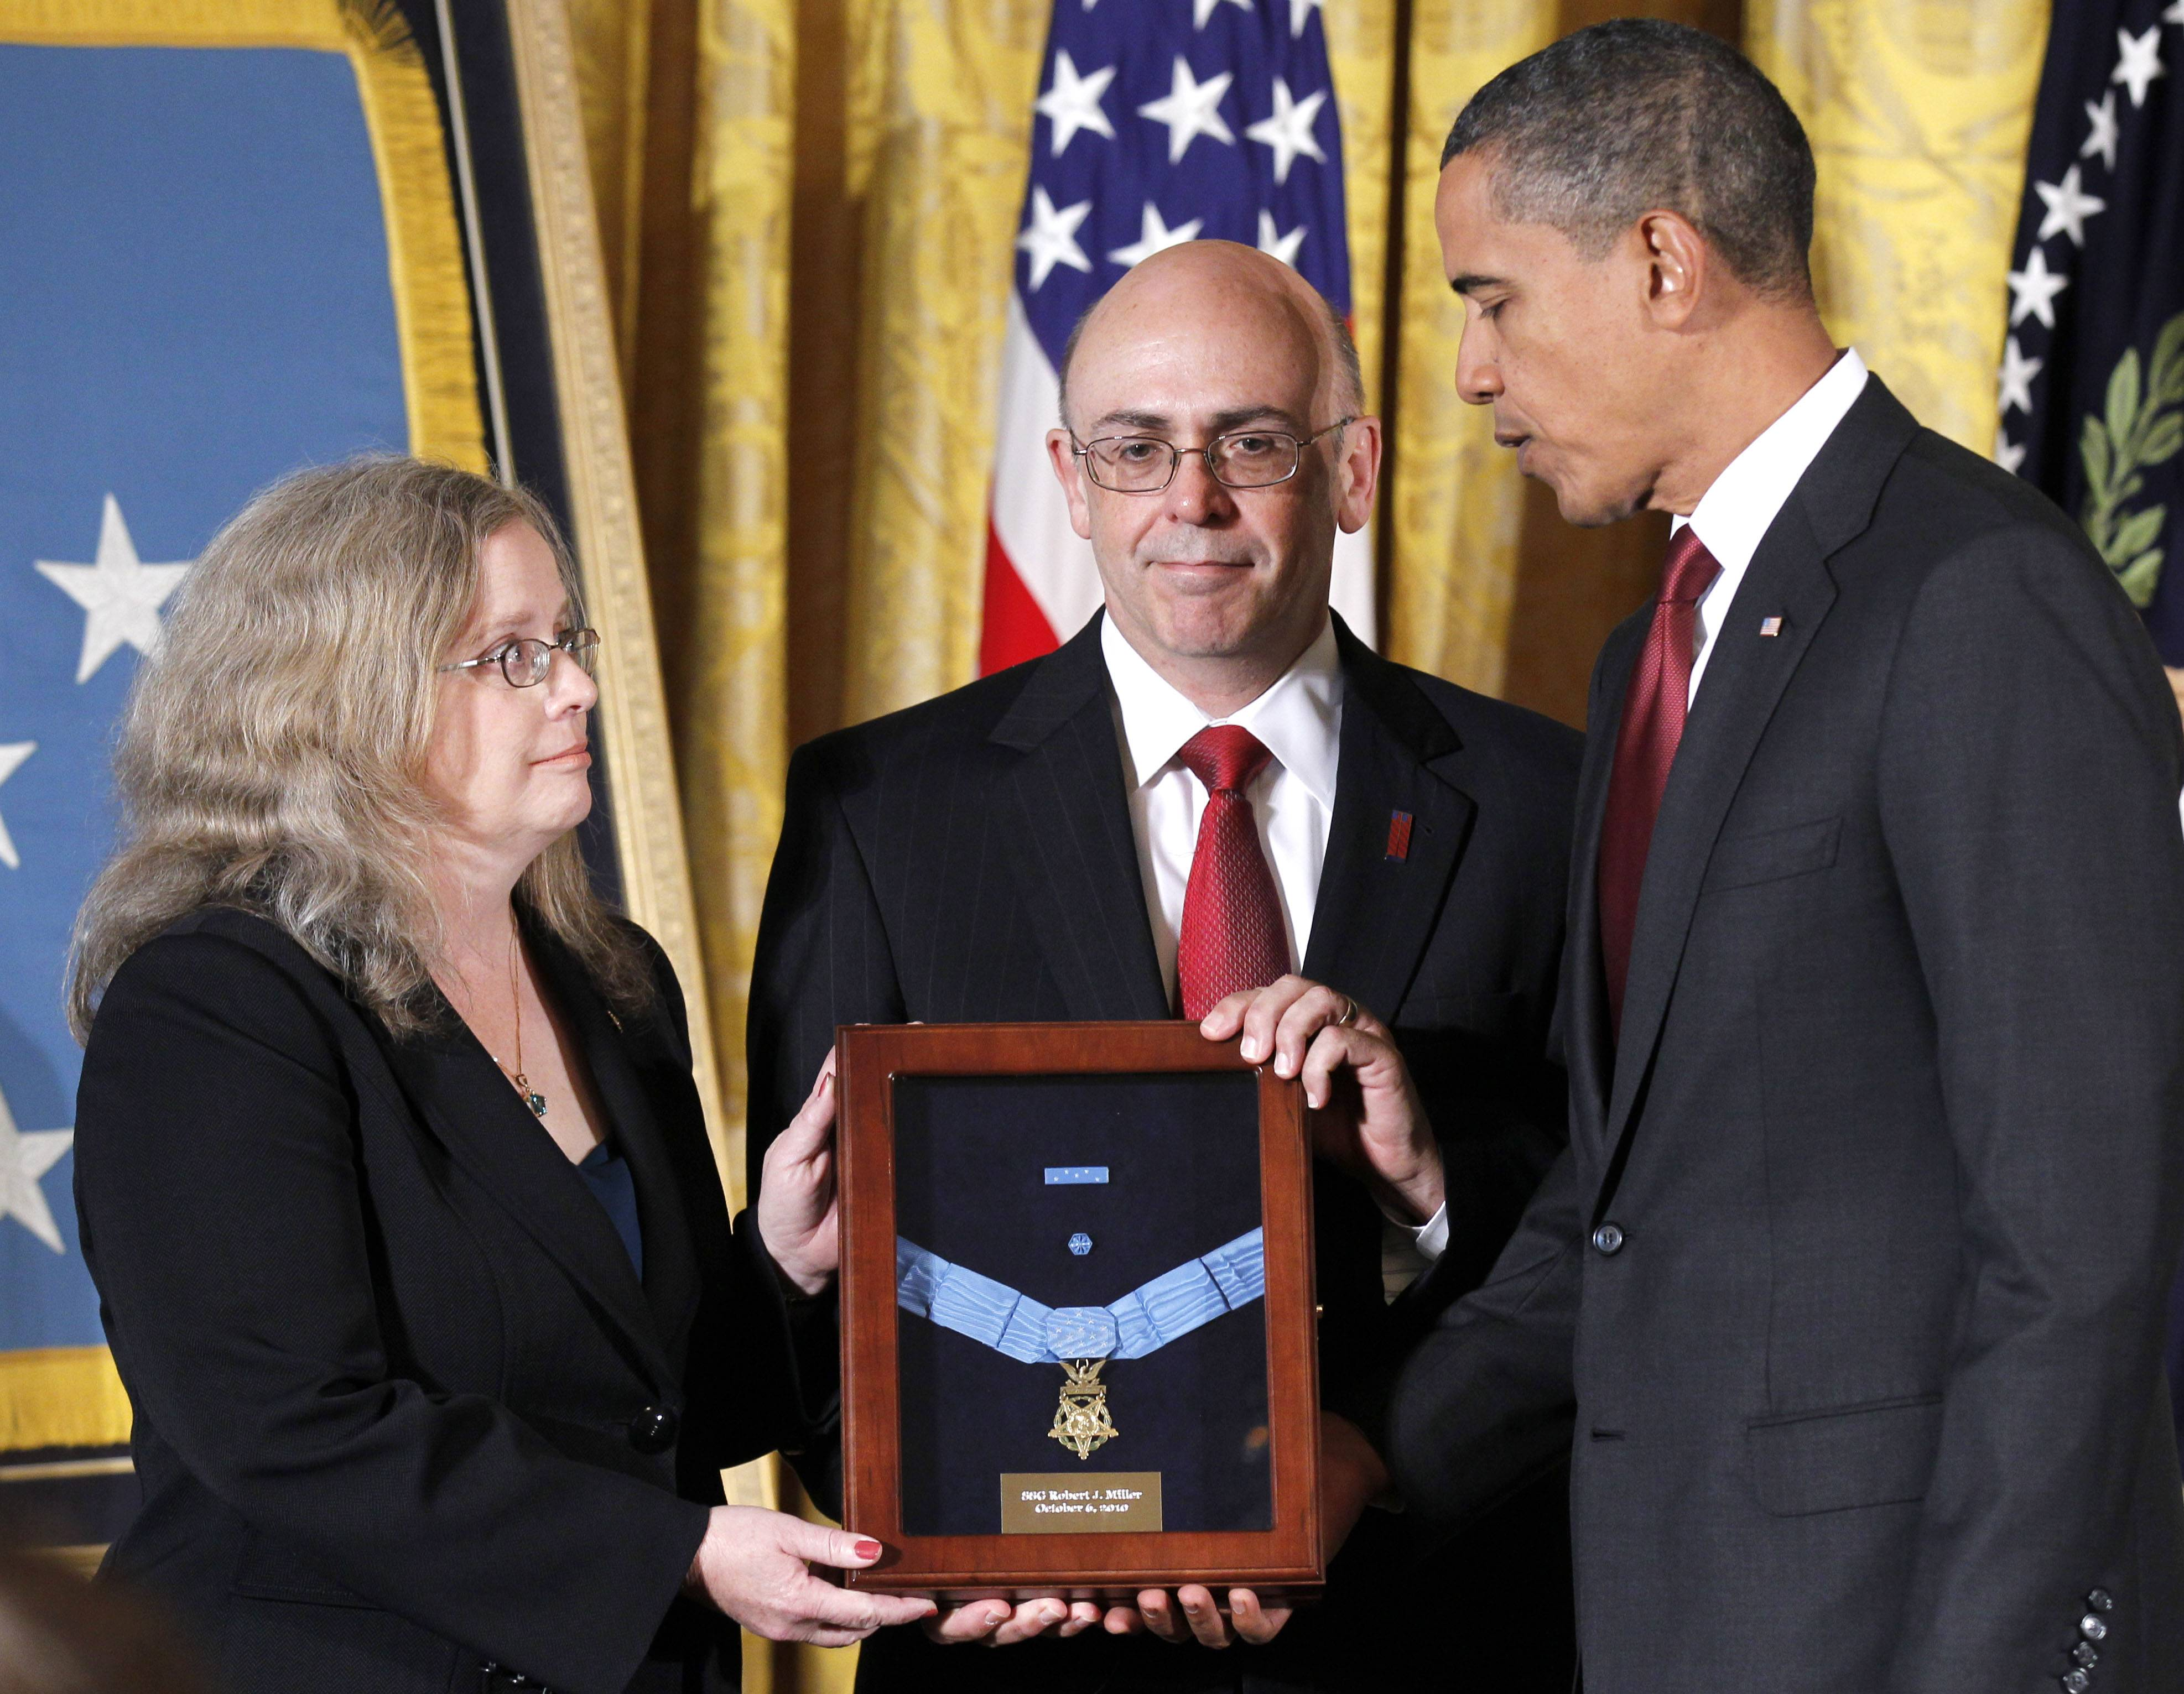 President Barack Obama presented the Medal of Honor posthumously to the parents of U.S. Army Staff Sgt. Robert J. Miller -- Phil and Maureen Miller -- in 2010.